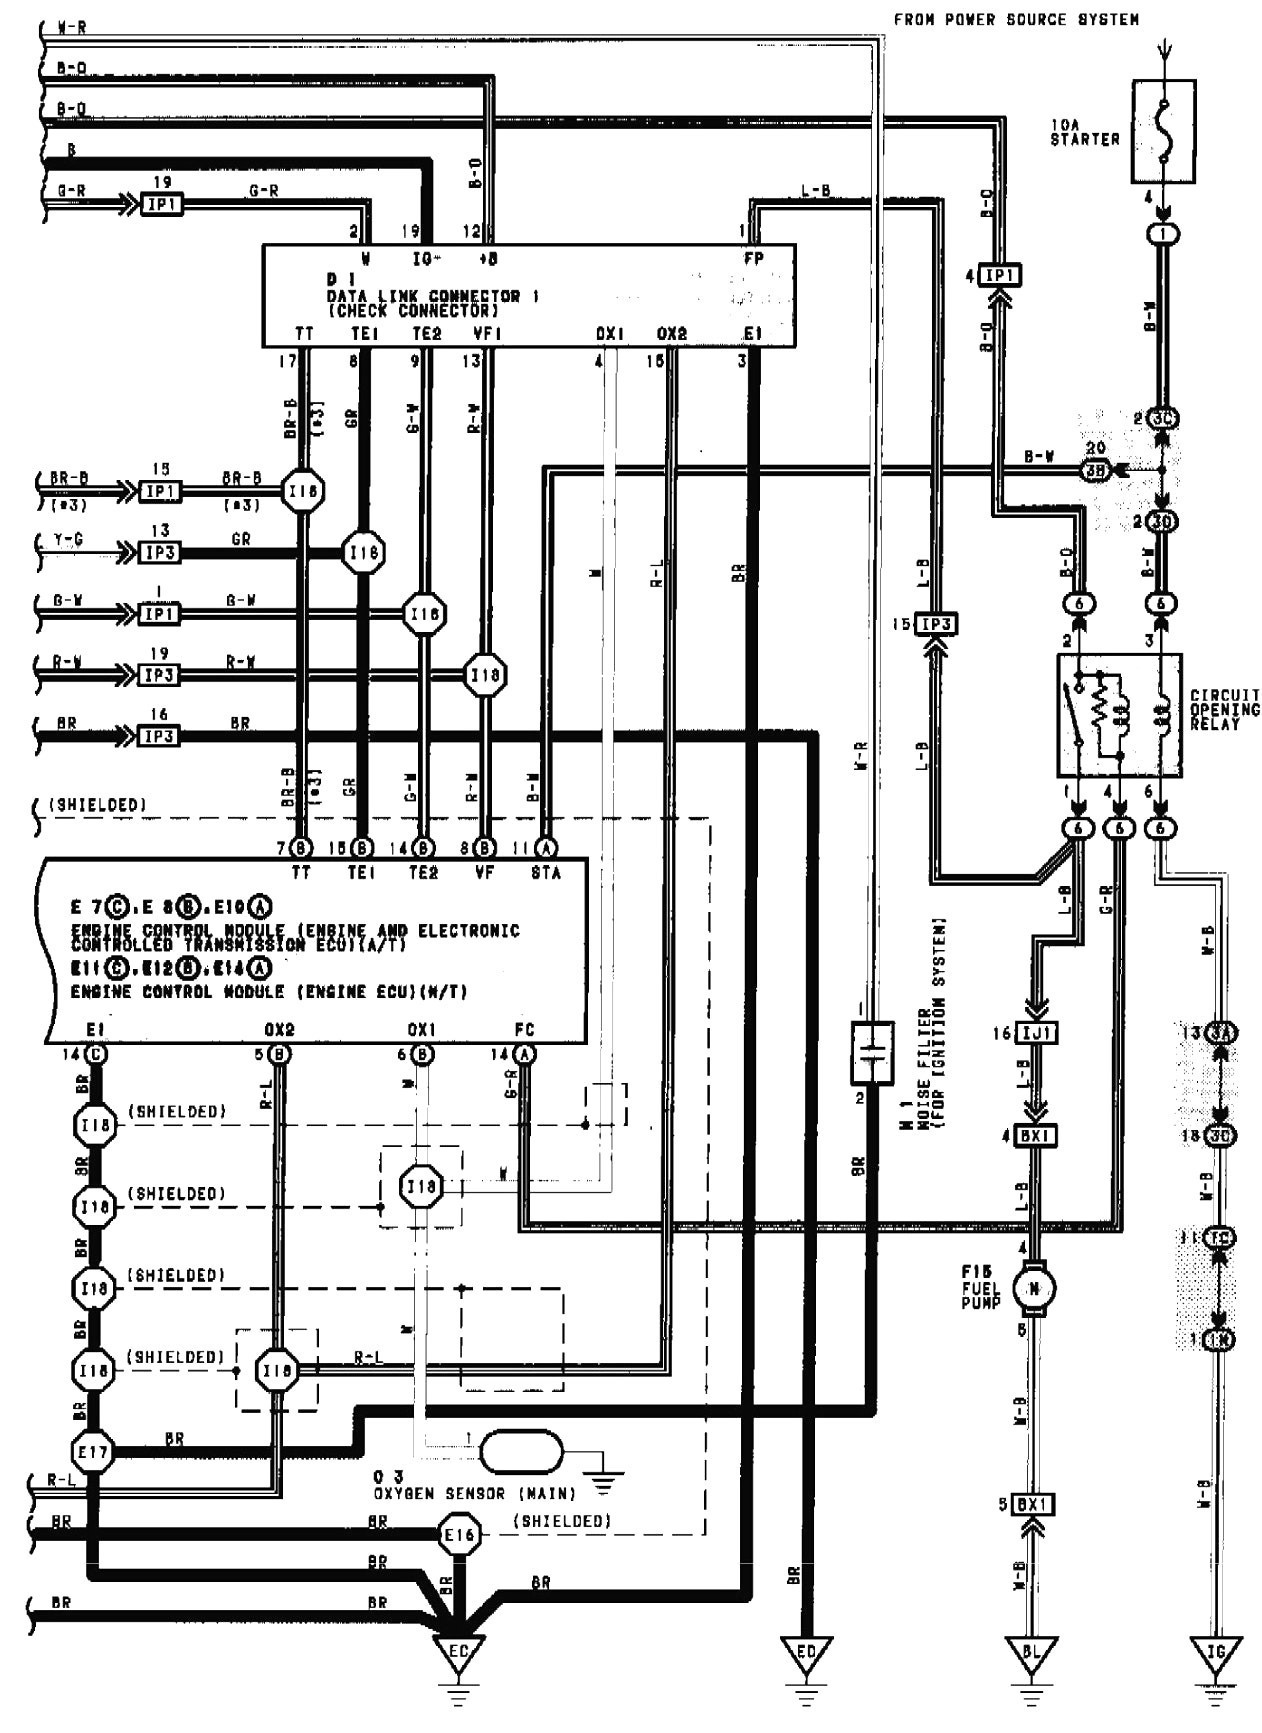 Toyota Camry Wiring Diagram Electrical Wiring Diagram Moreover Toyota Corolla Wiring Of Toyota Camry Wiring Diagram